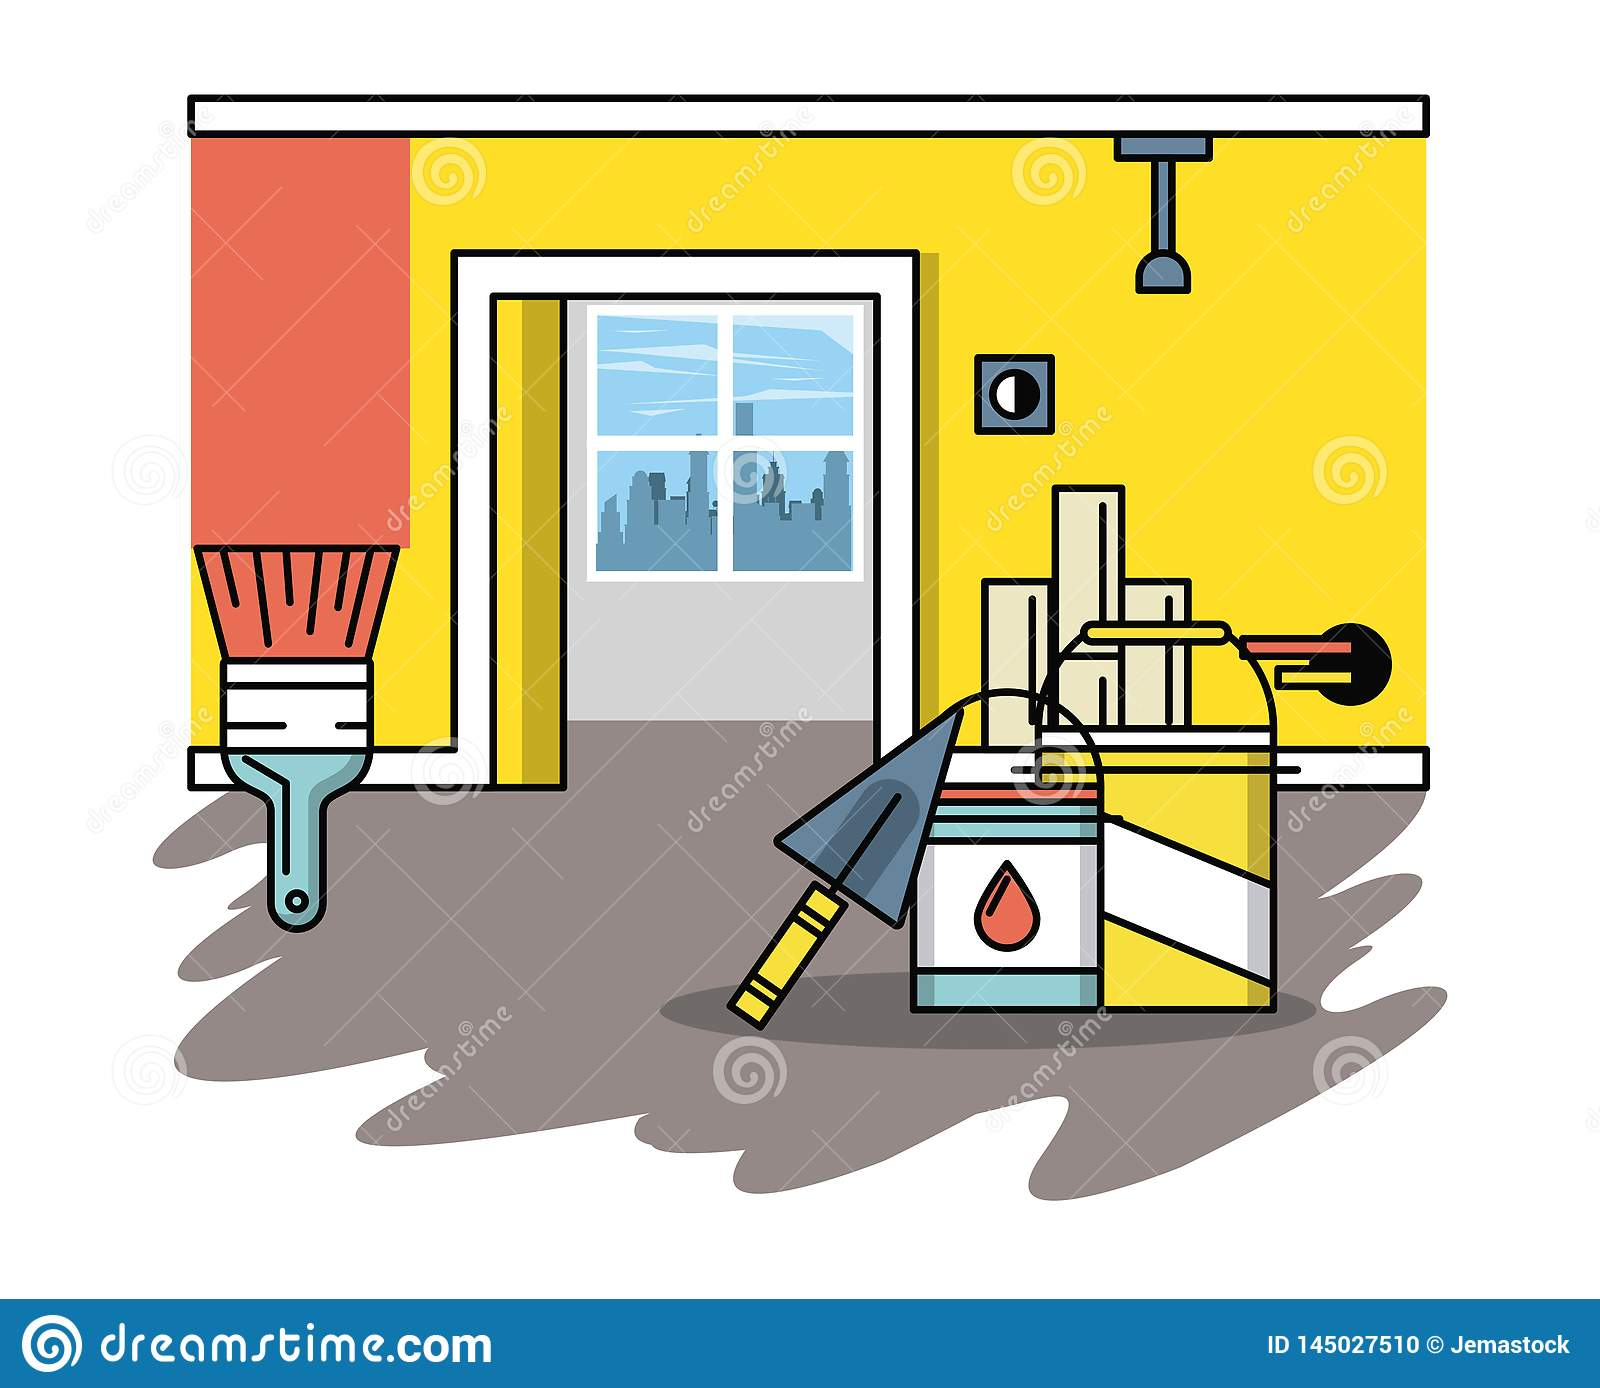 Home improvement and tools stock vector. Illustration of ... on graphic design construction company, graphic design home repair, clip art home construction, project management home construction, portfolio construction, graphic design home office furniture, prefab home construction, infographic home construction, glass home construction,